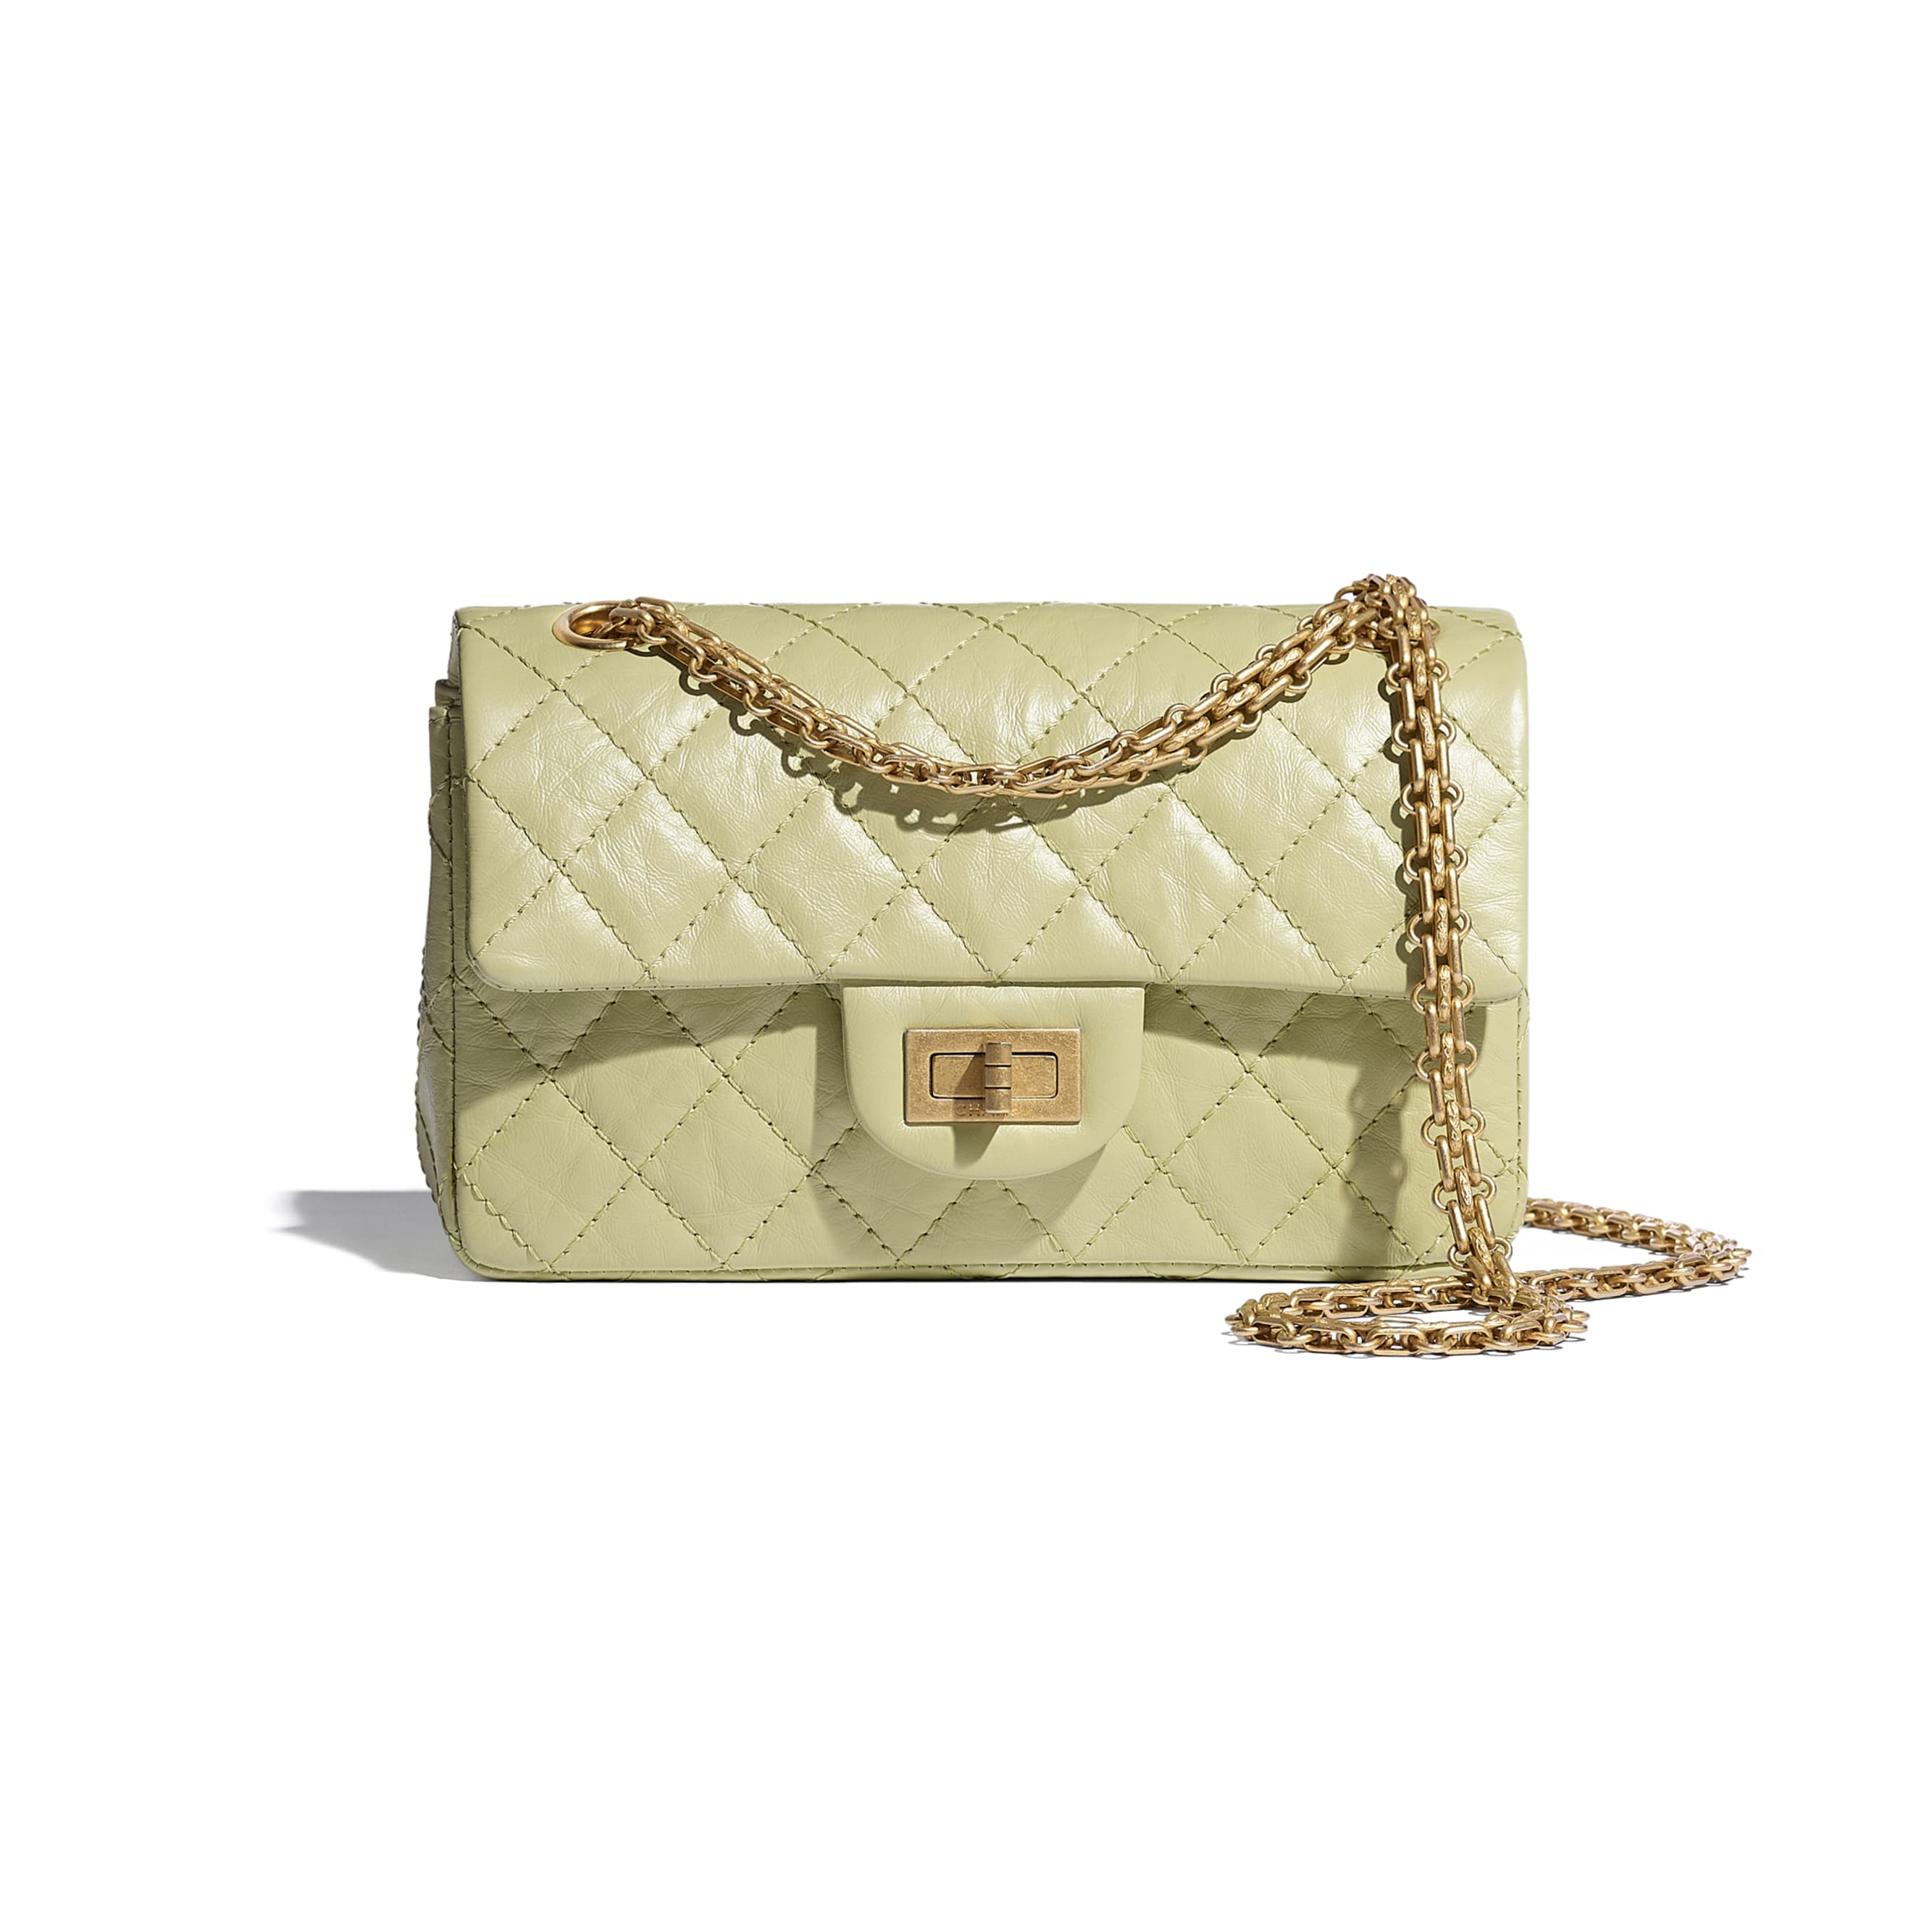 Small 2.55 Handbag - Green - Aged Calfskin & Gold-Tone Metal - CHANEL - Default view - see standard sized version